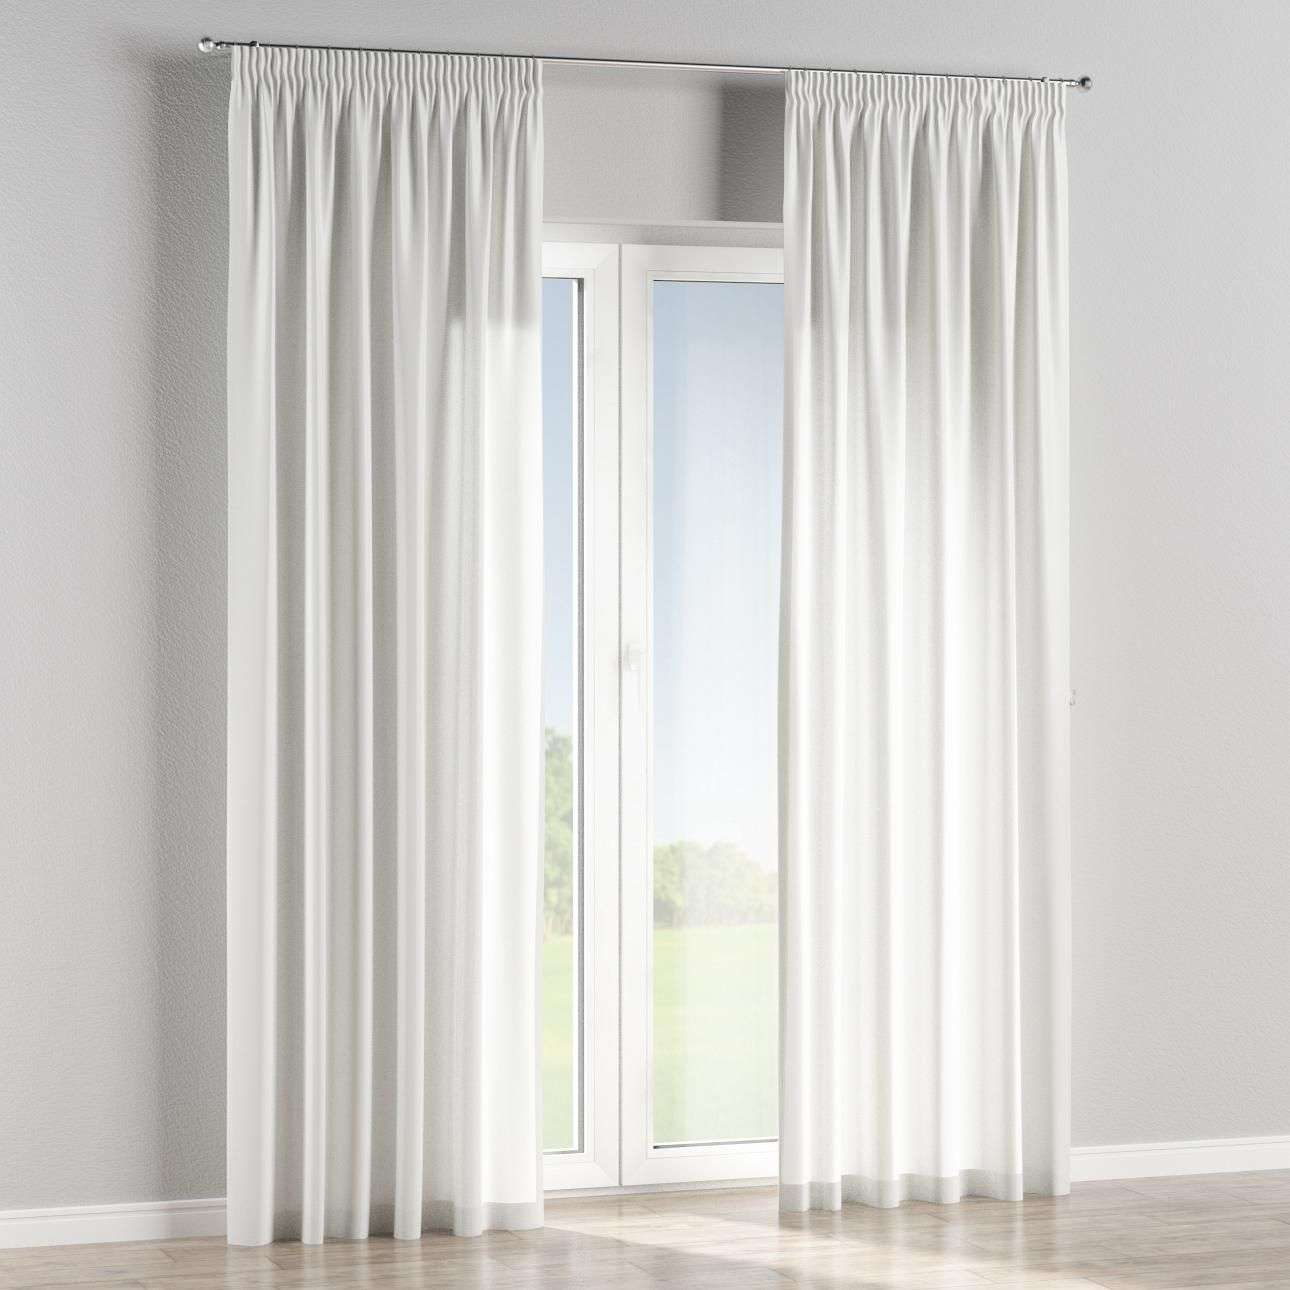 Pencil pleat curtains in collection SALE, fabric: 130-10